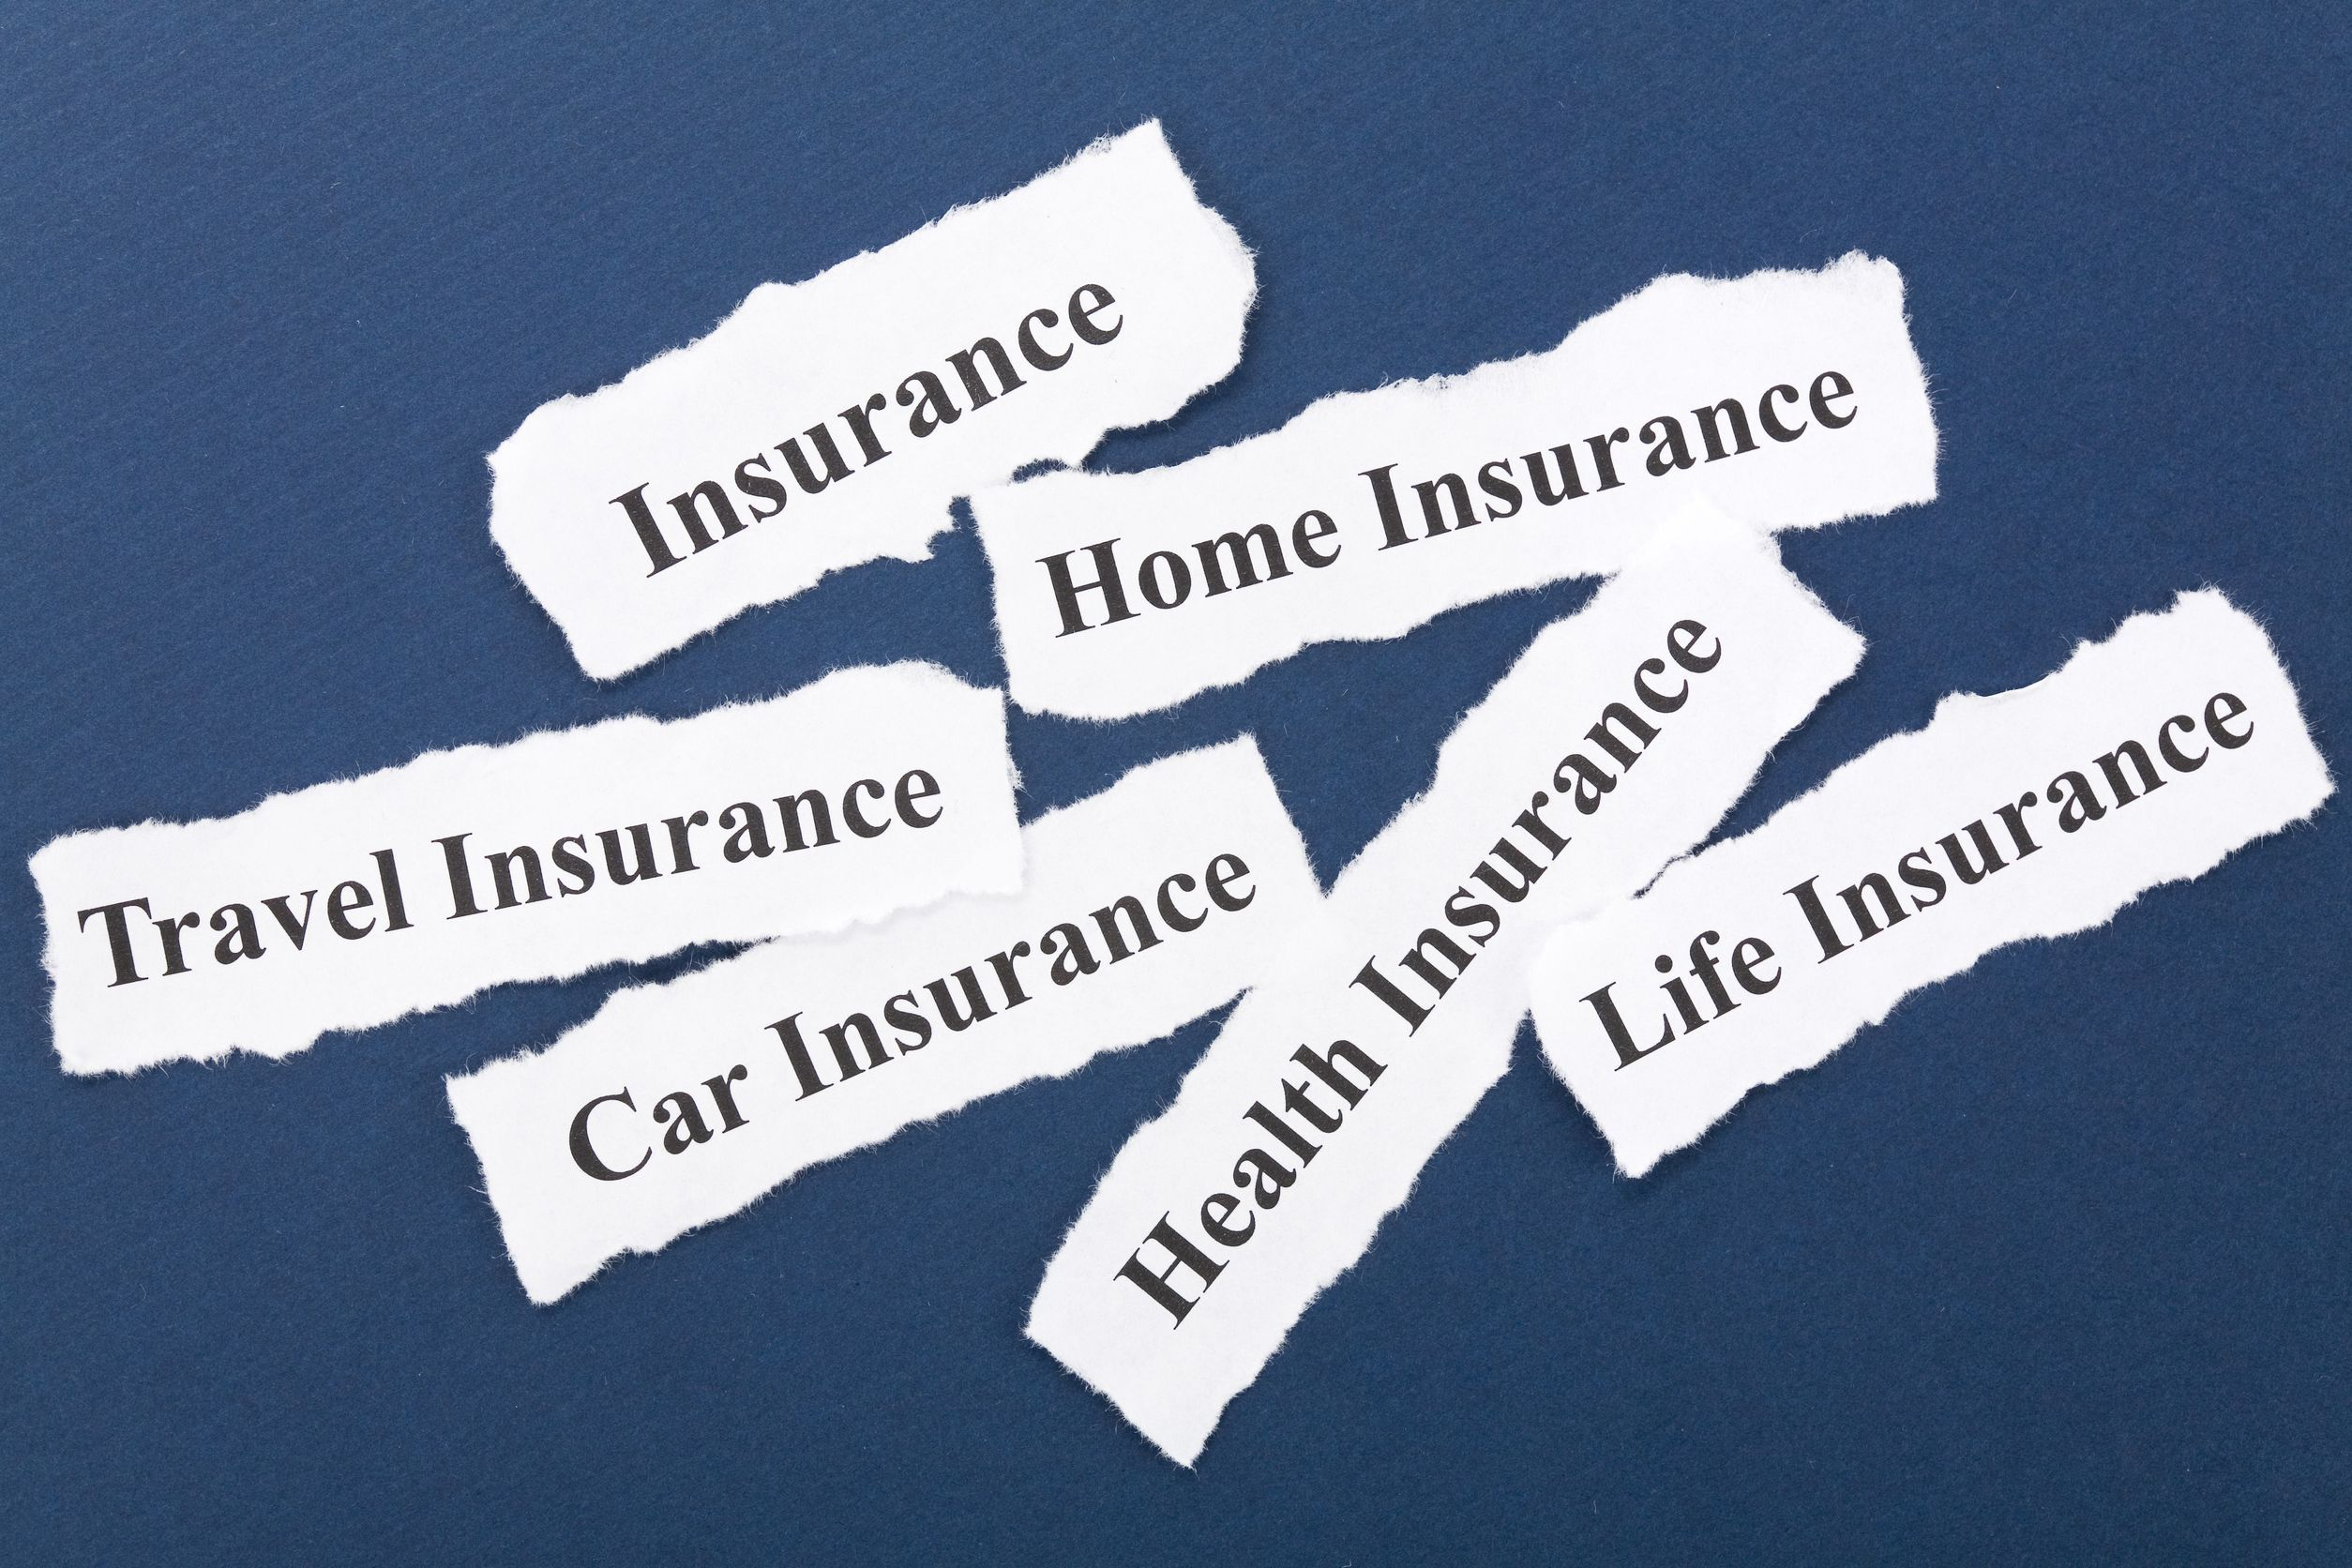 Insurance Life Quotes United States Insurance Companies And Life Insurance Policy Quotes